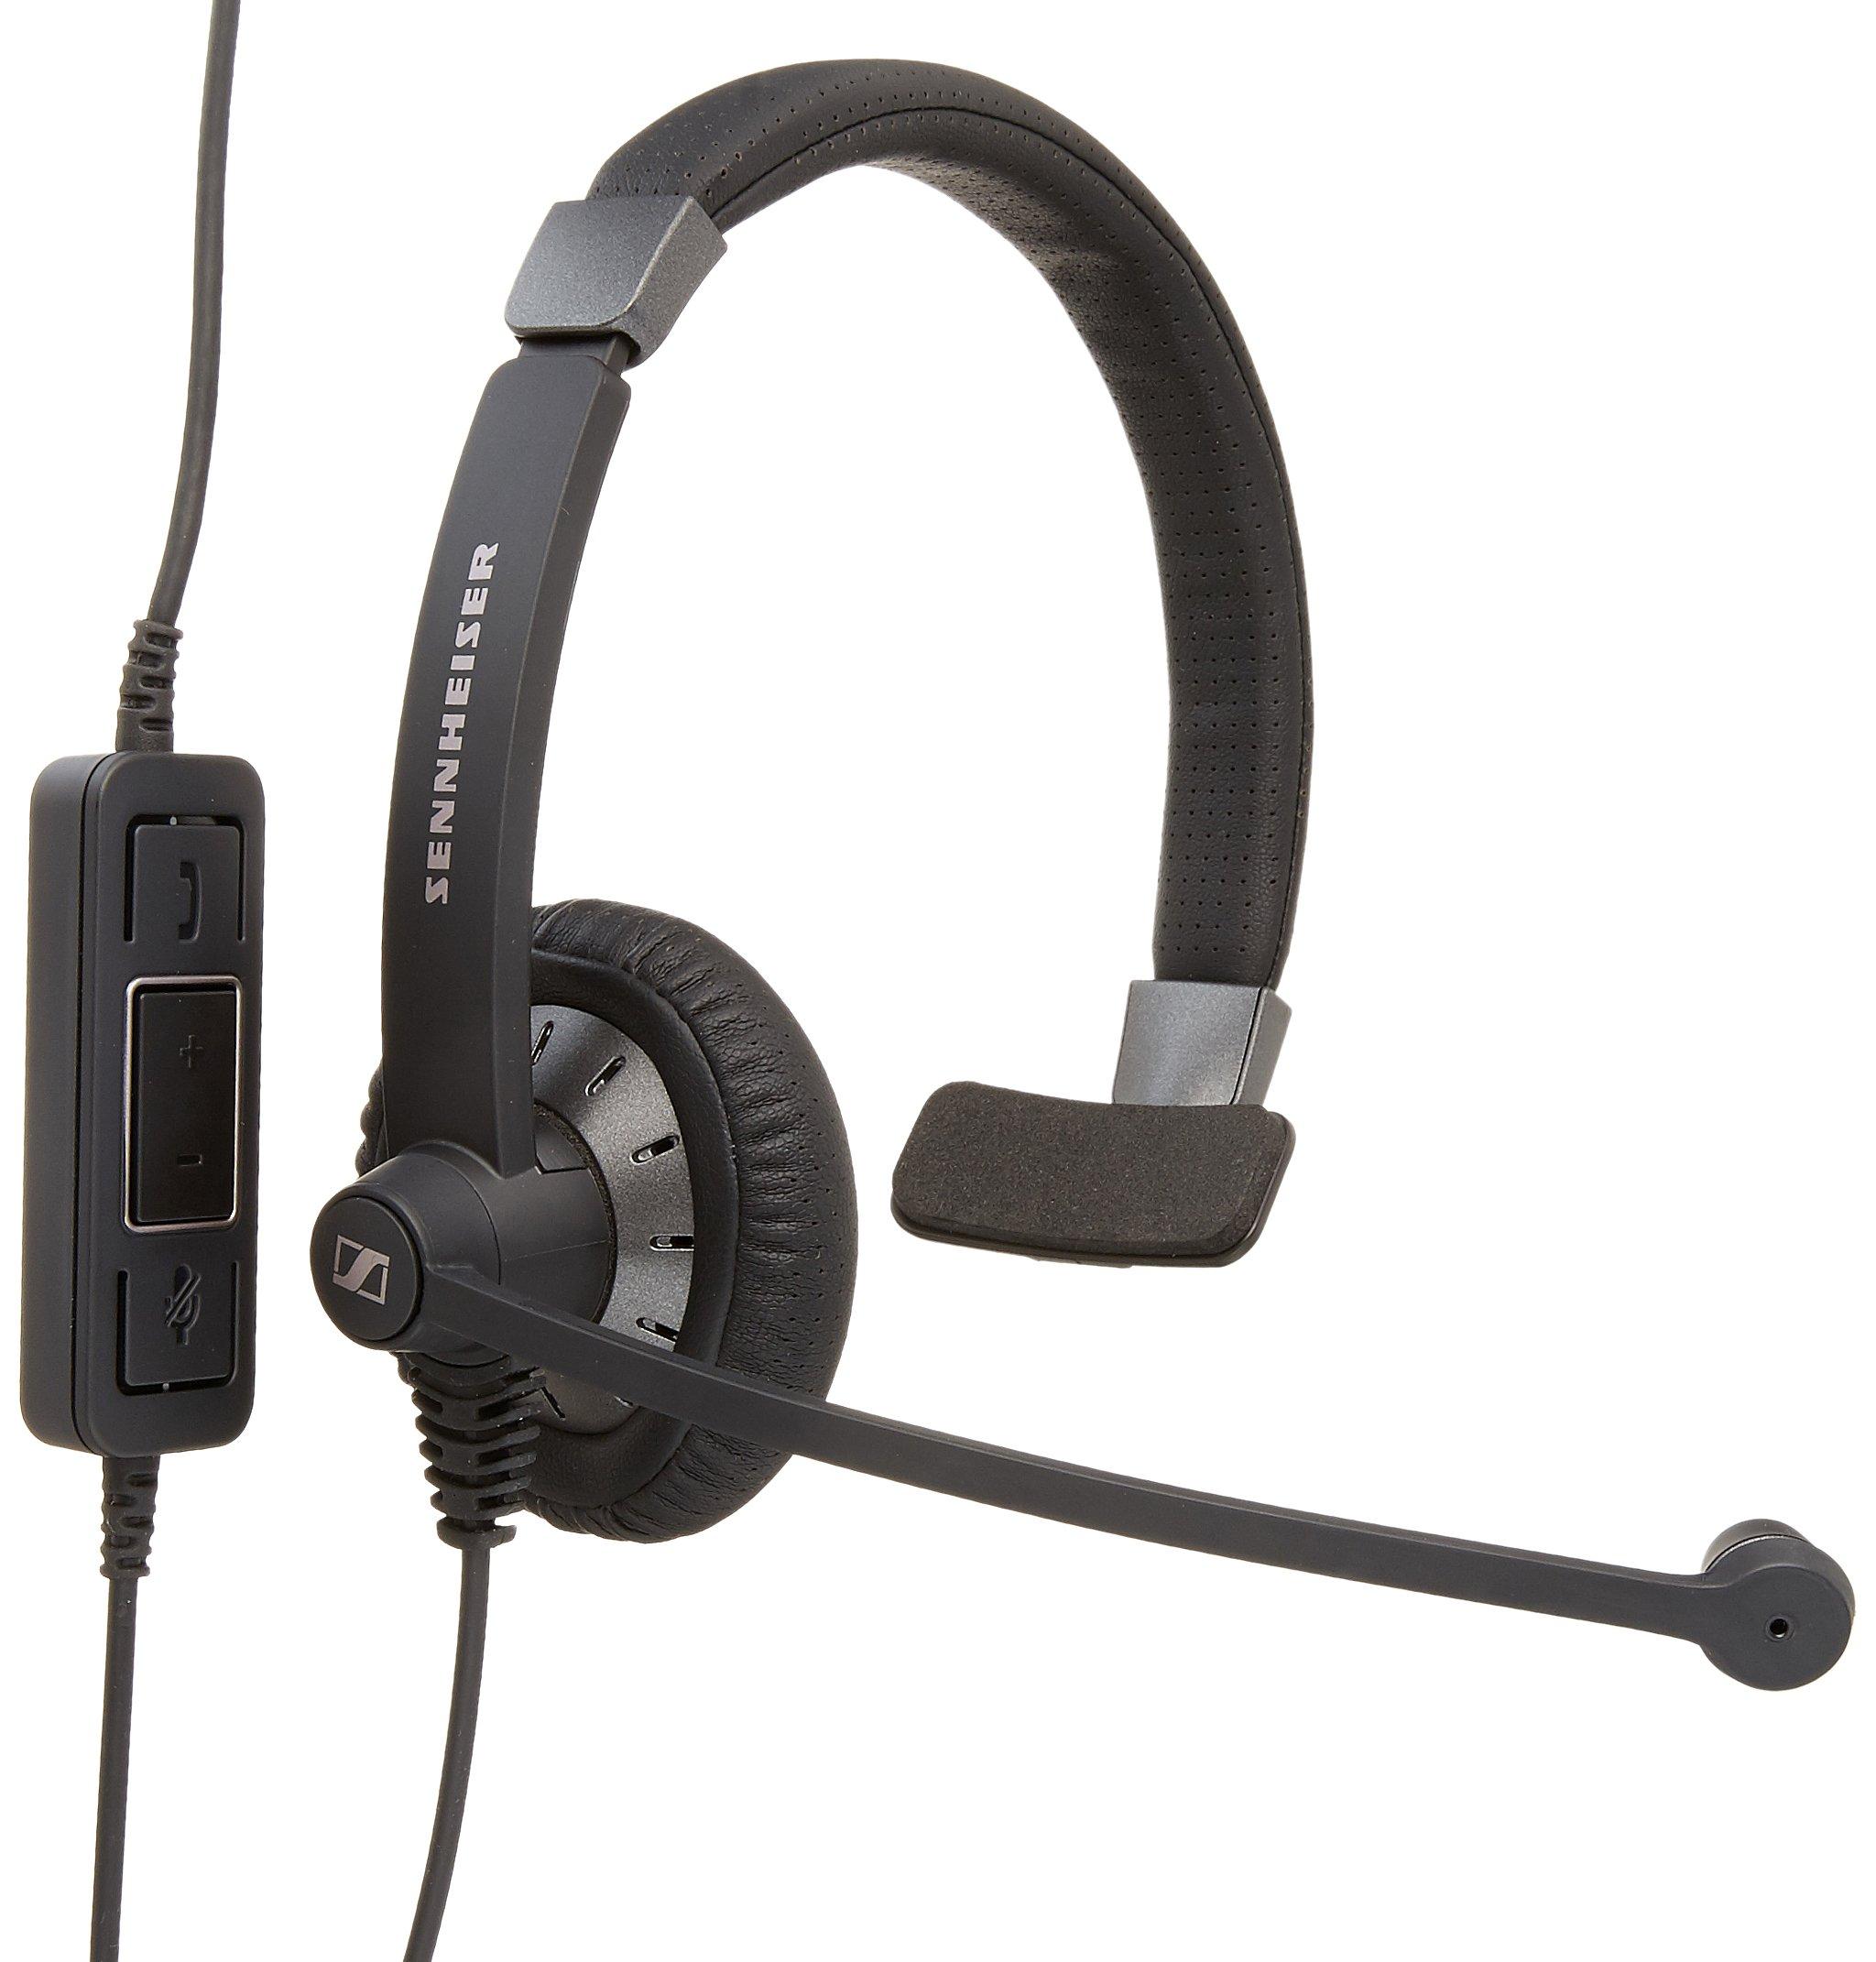 Sennehsier Culture Plus SC 40 USB MS Wired Single- Sided Headset, Certified for Skype for Business